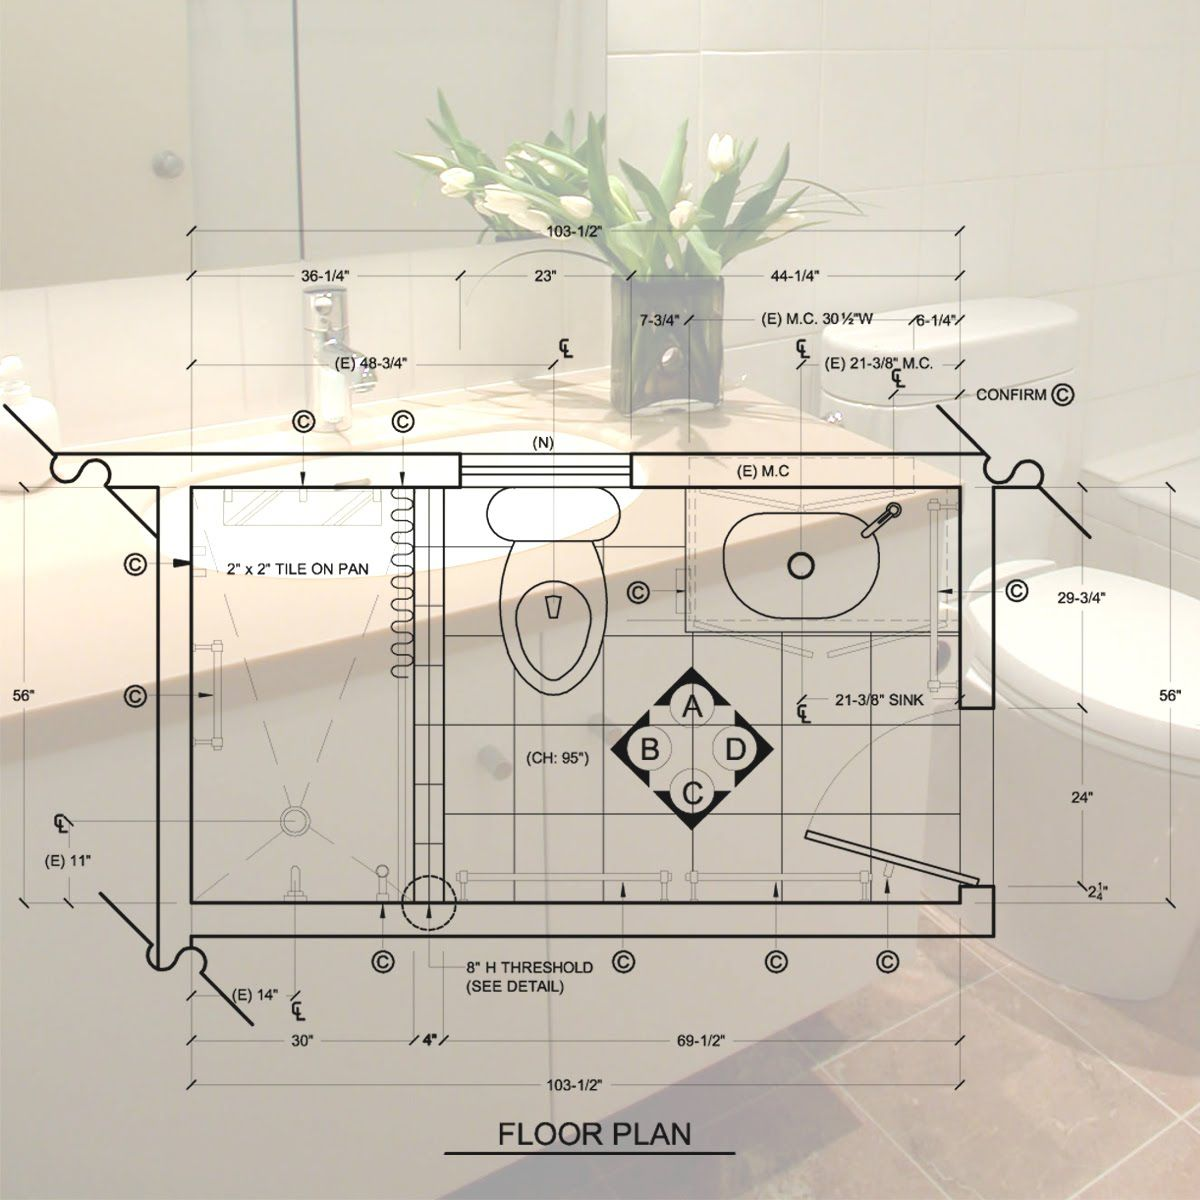 Bathroom drawings design - 5 X 8 Bathroom Layout